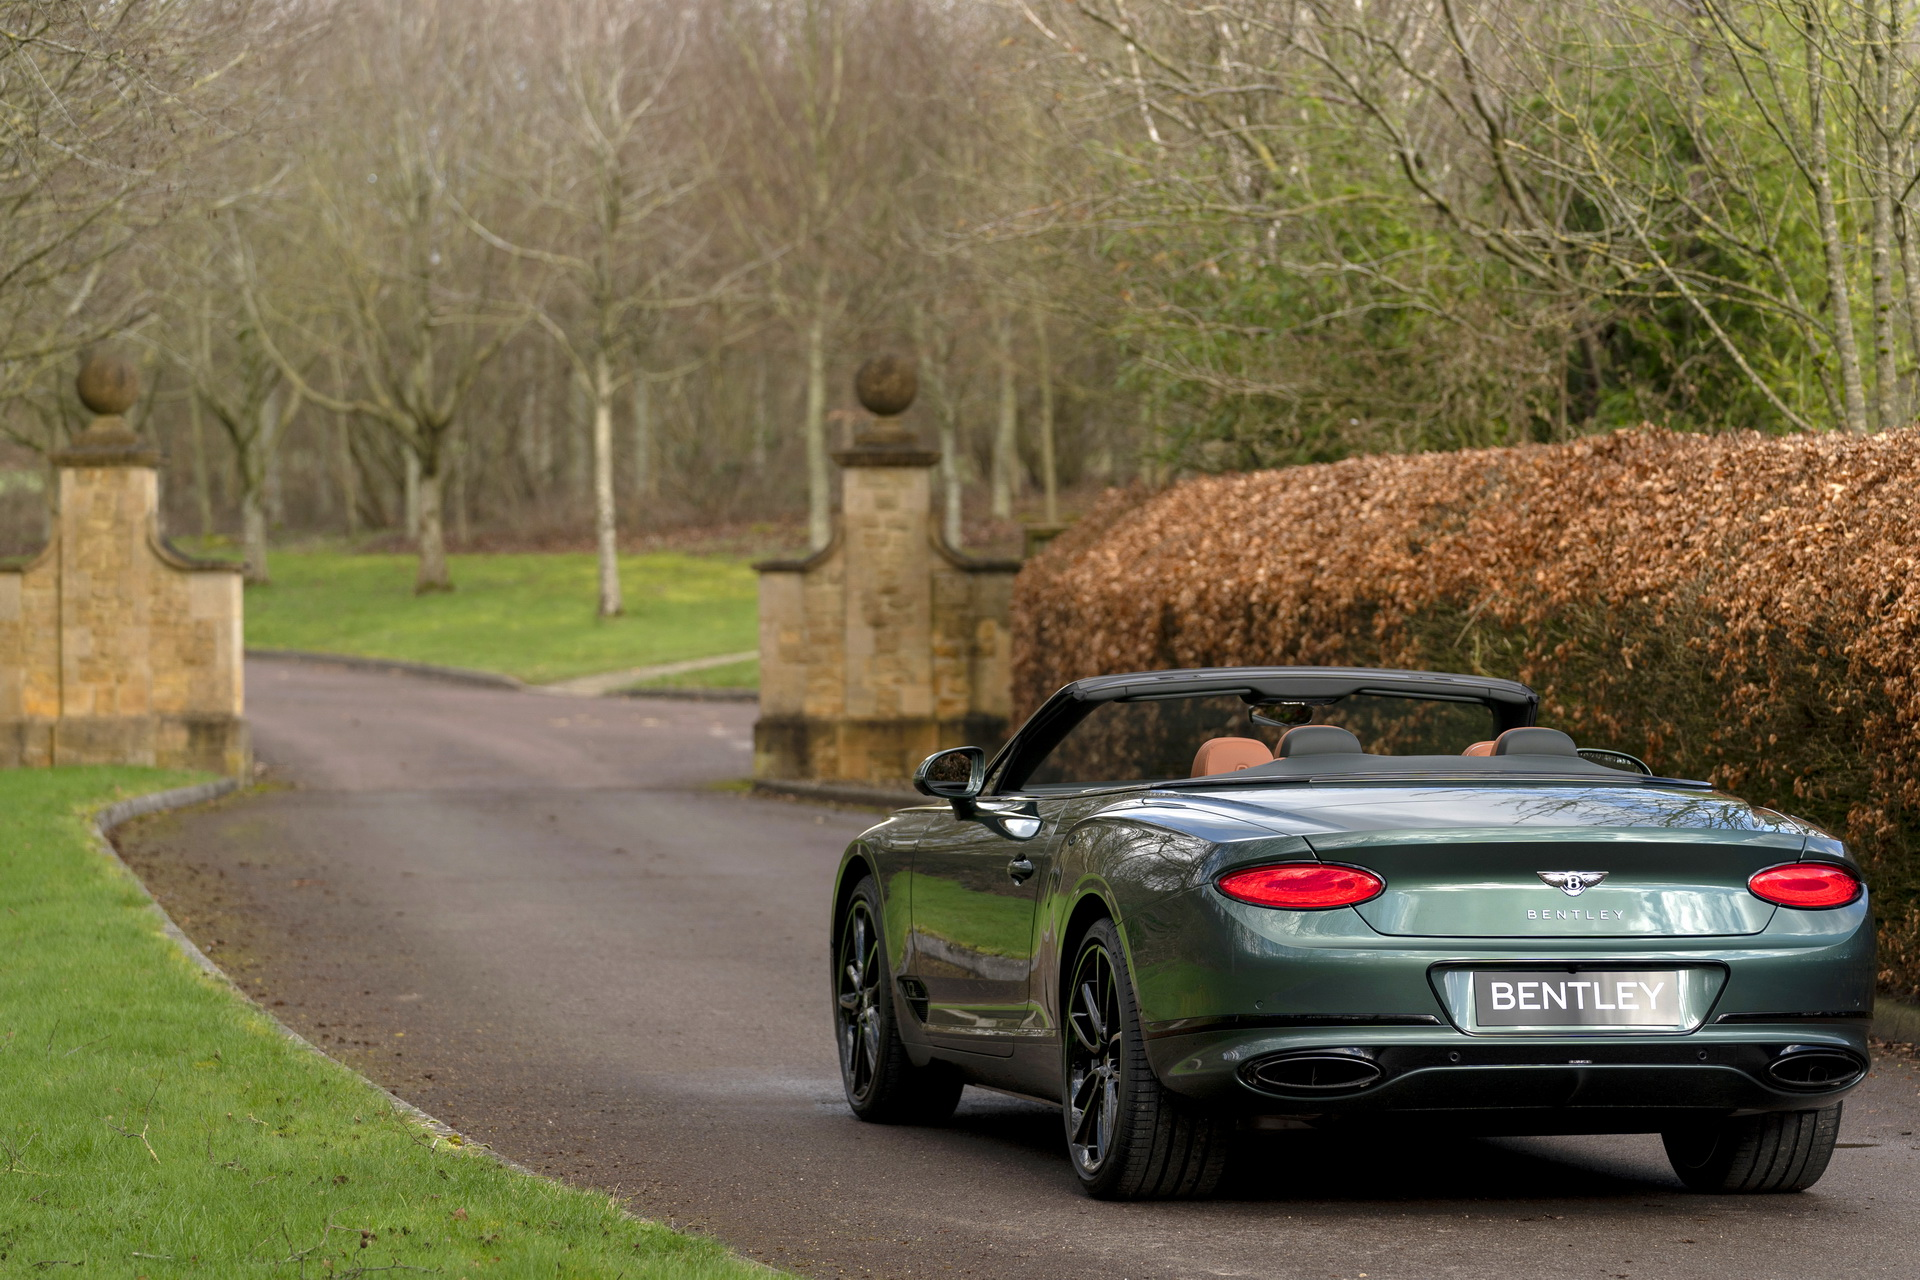 Bentley-Continental-GTC-Equestrian-Edition-3